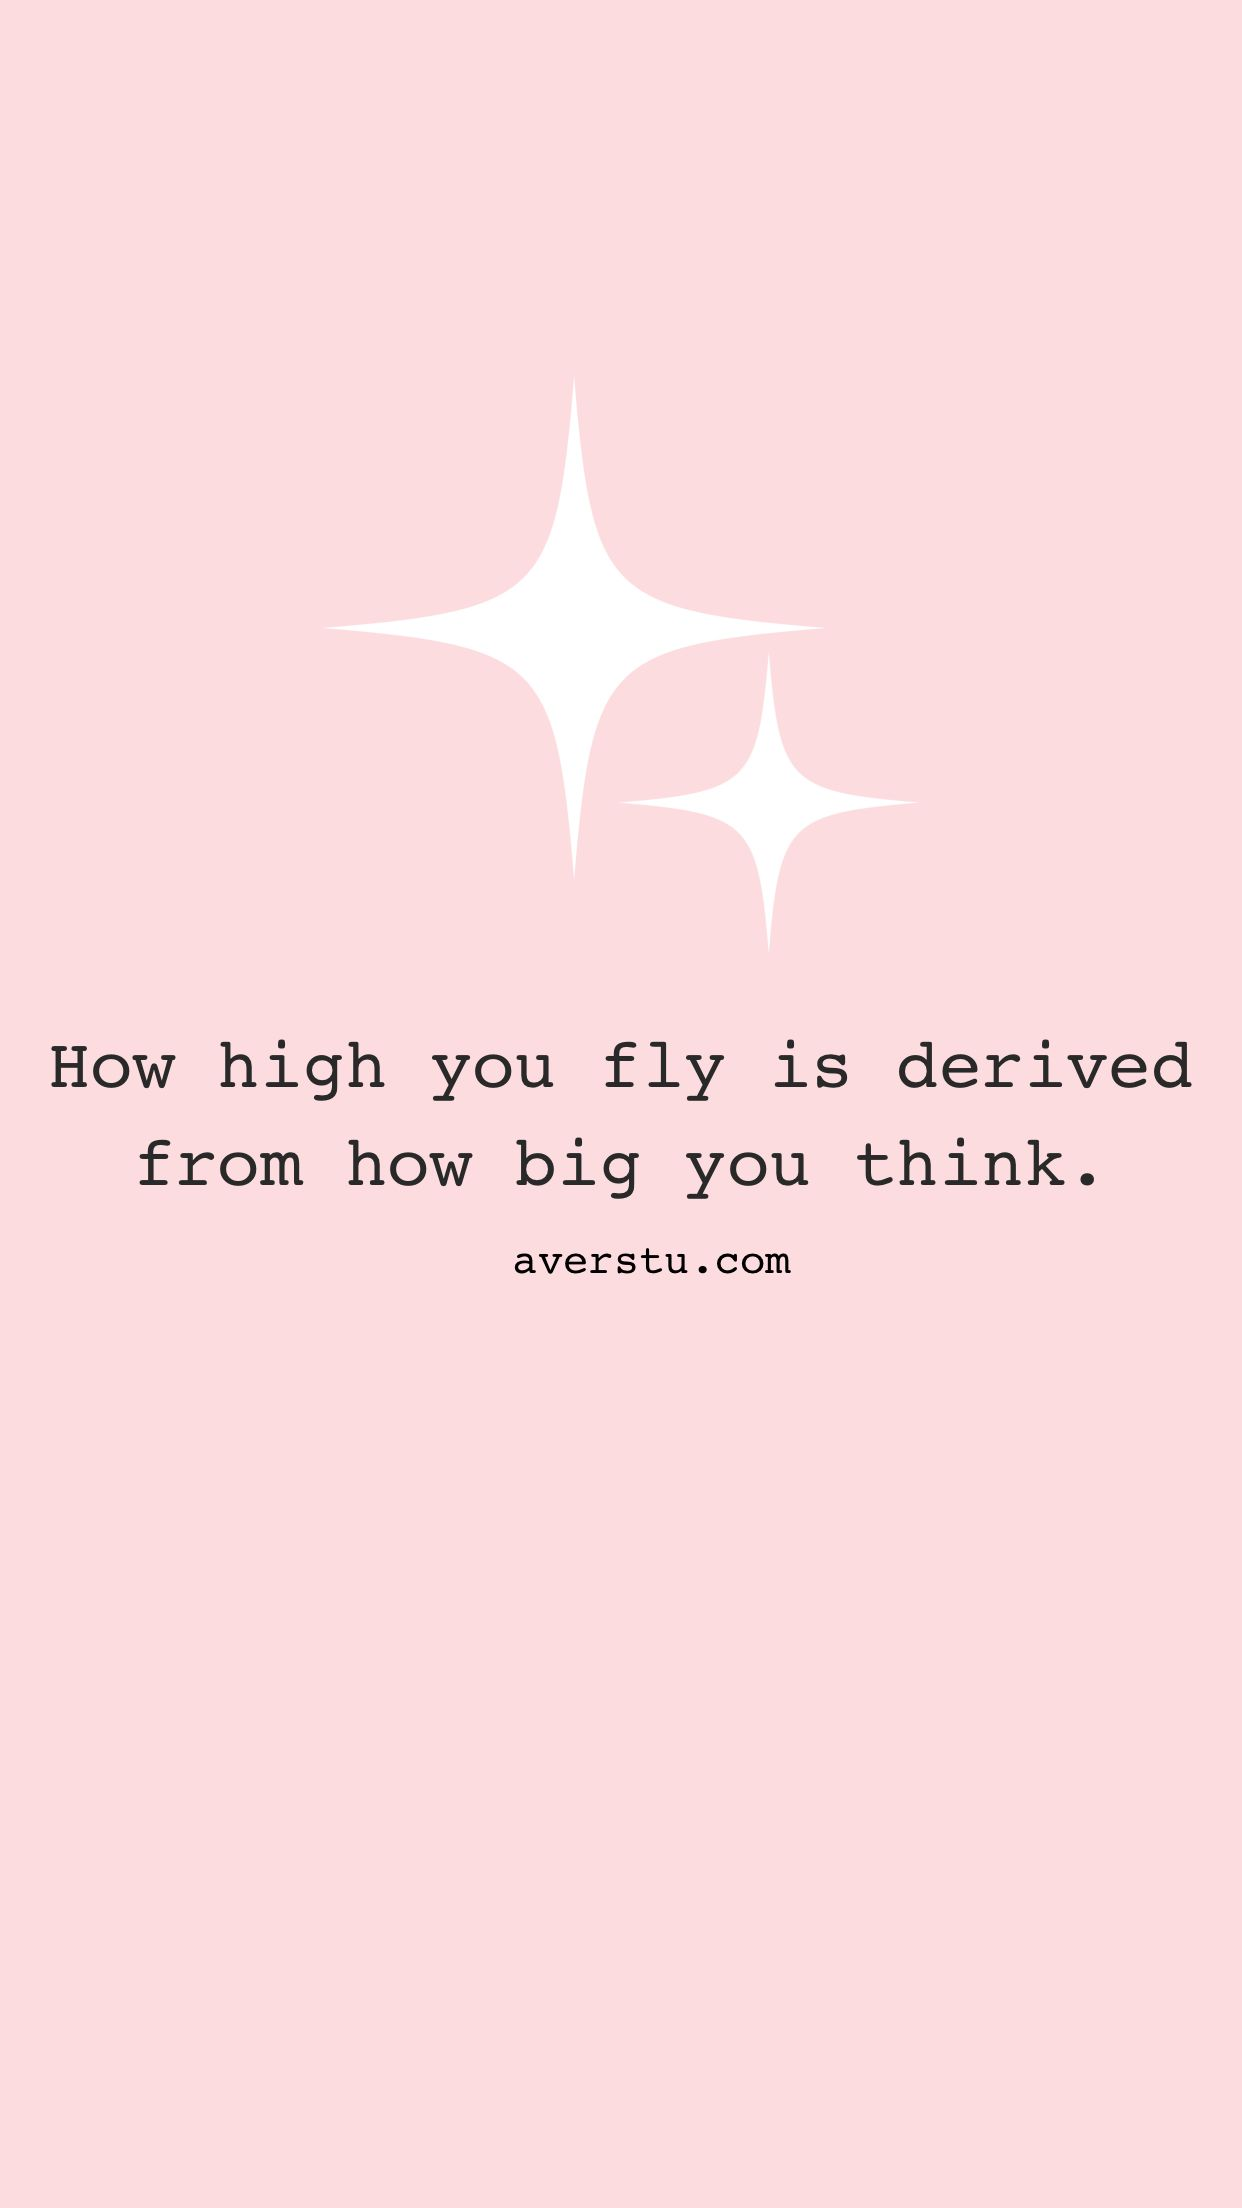 150 Top Self Love Quotes To Always Remember Part 1 The Ultimate Inspirational Life Quotes Happy Quotes Fly Quotes Self Love Quotes